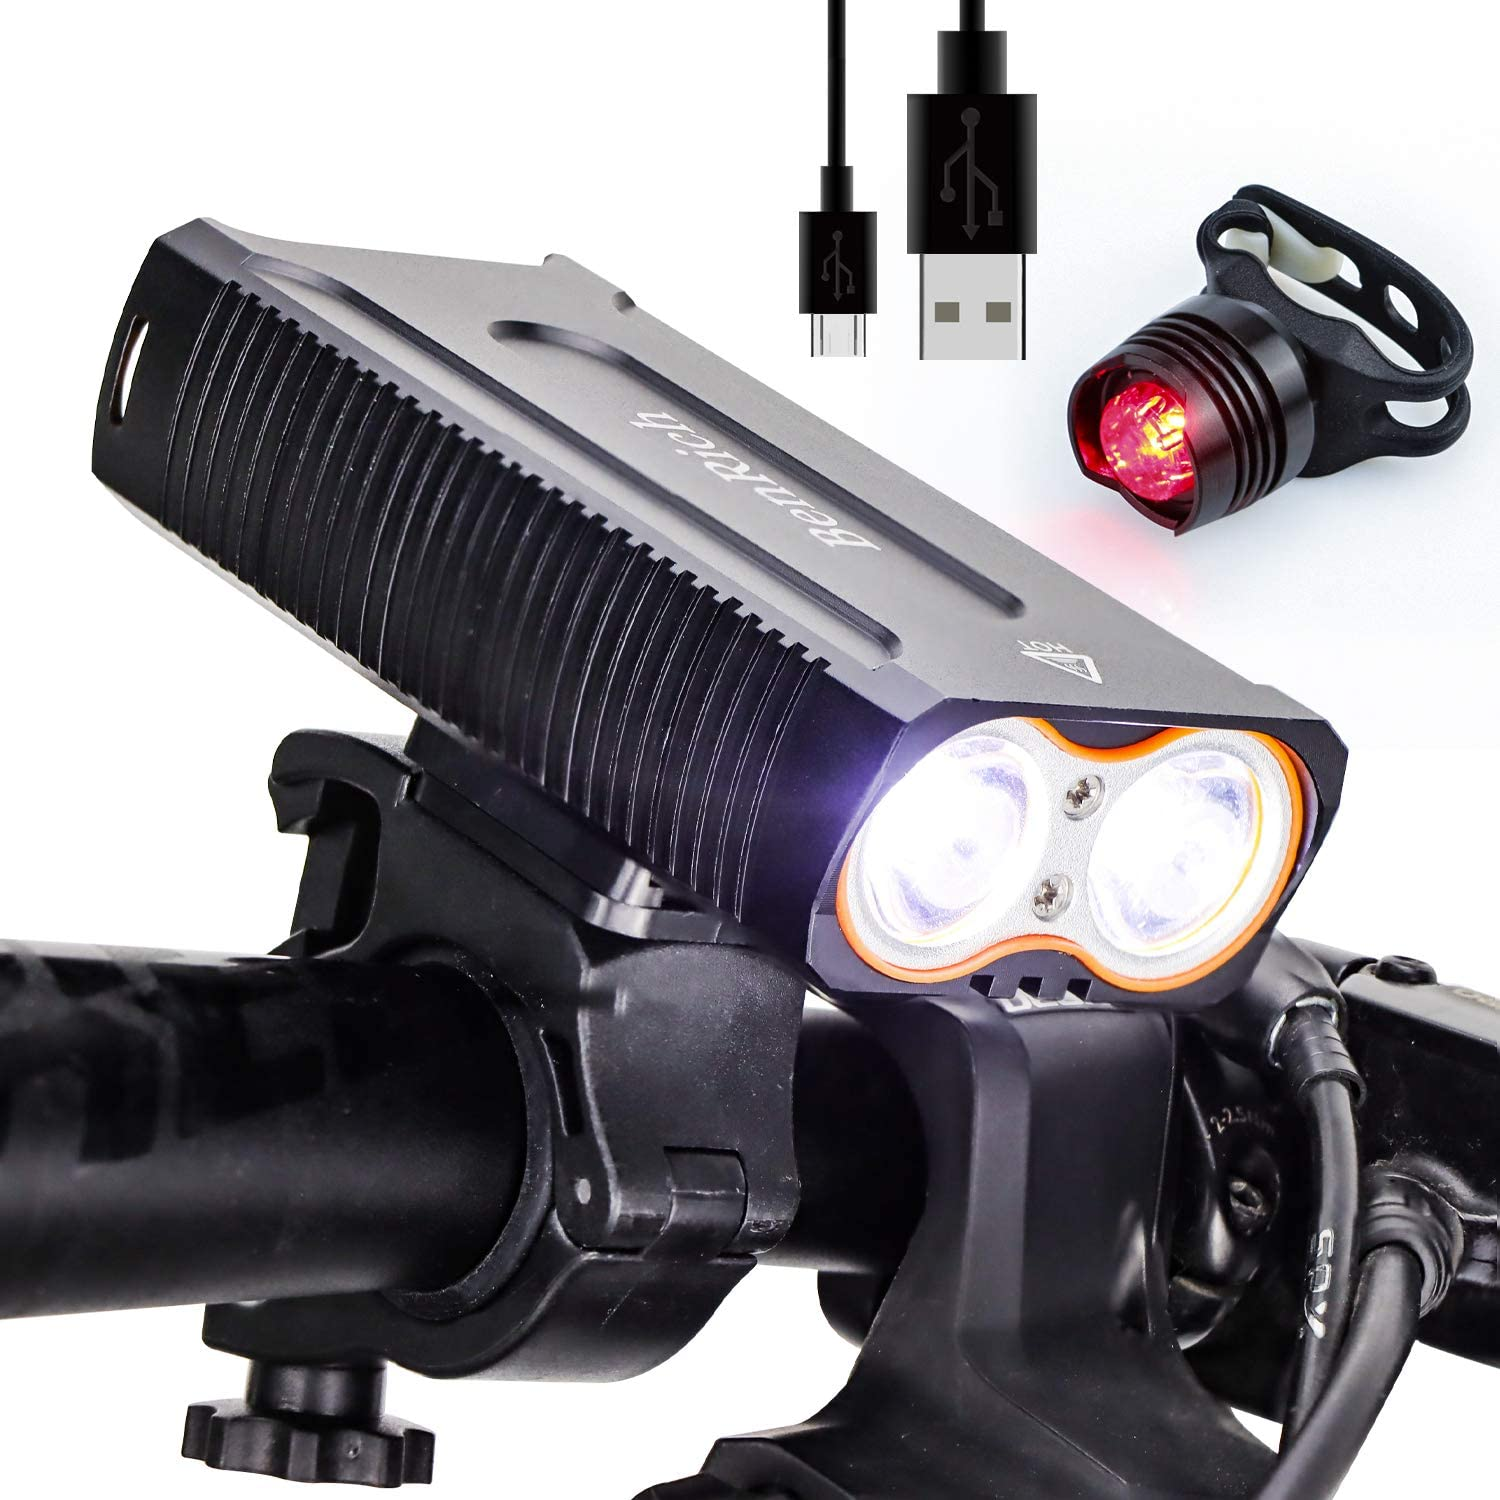 BenRich Bike Lights USB Rechargeable Super W Rapid rise Bright Lumens Be super welcome 2400